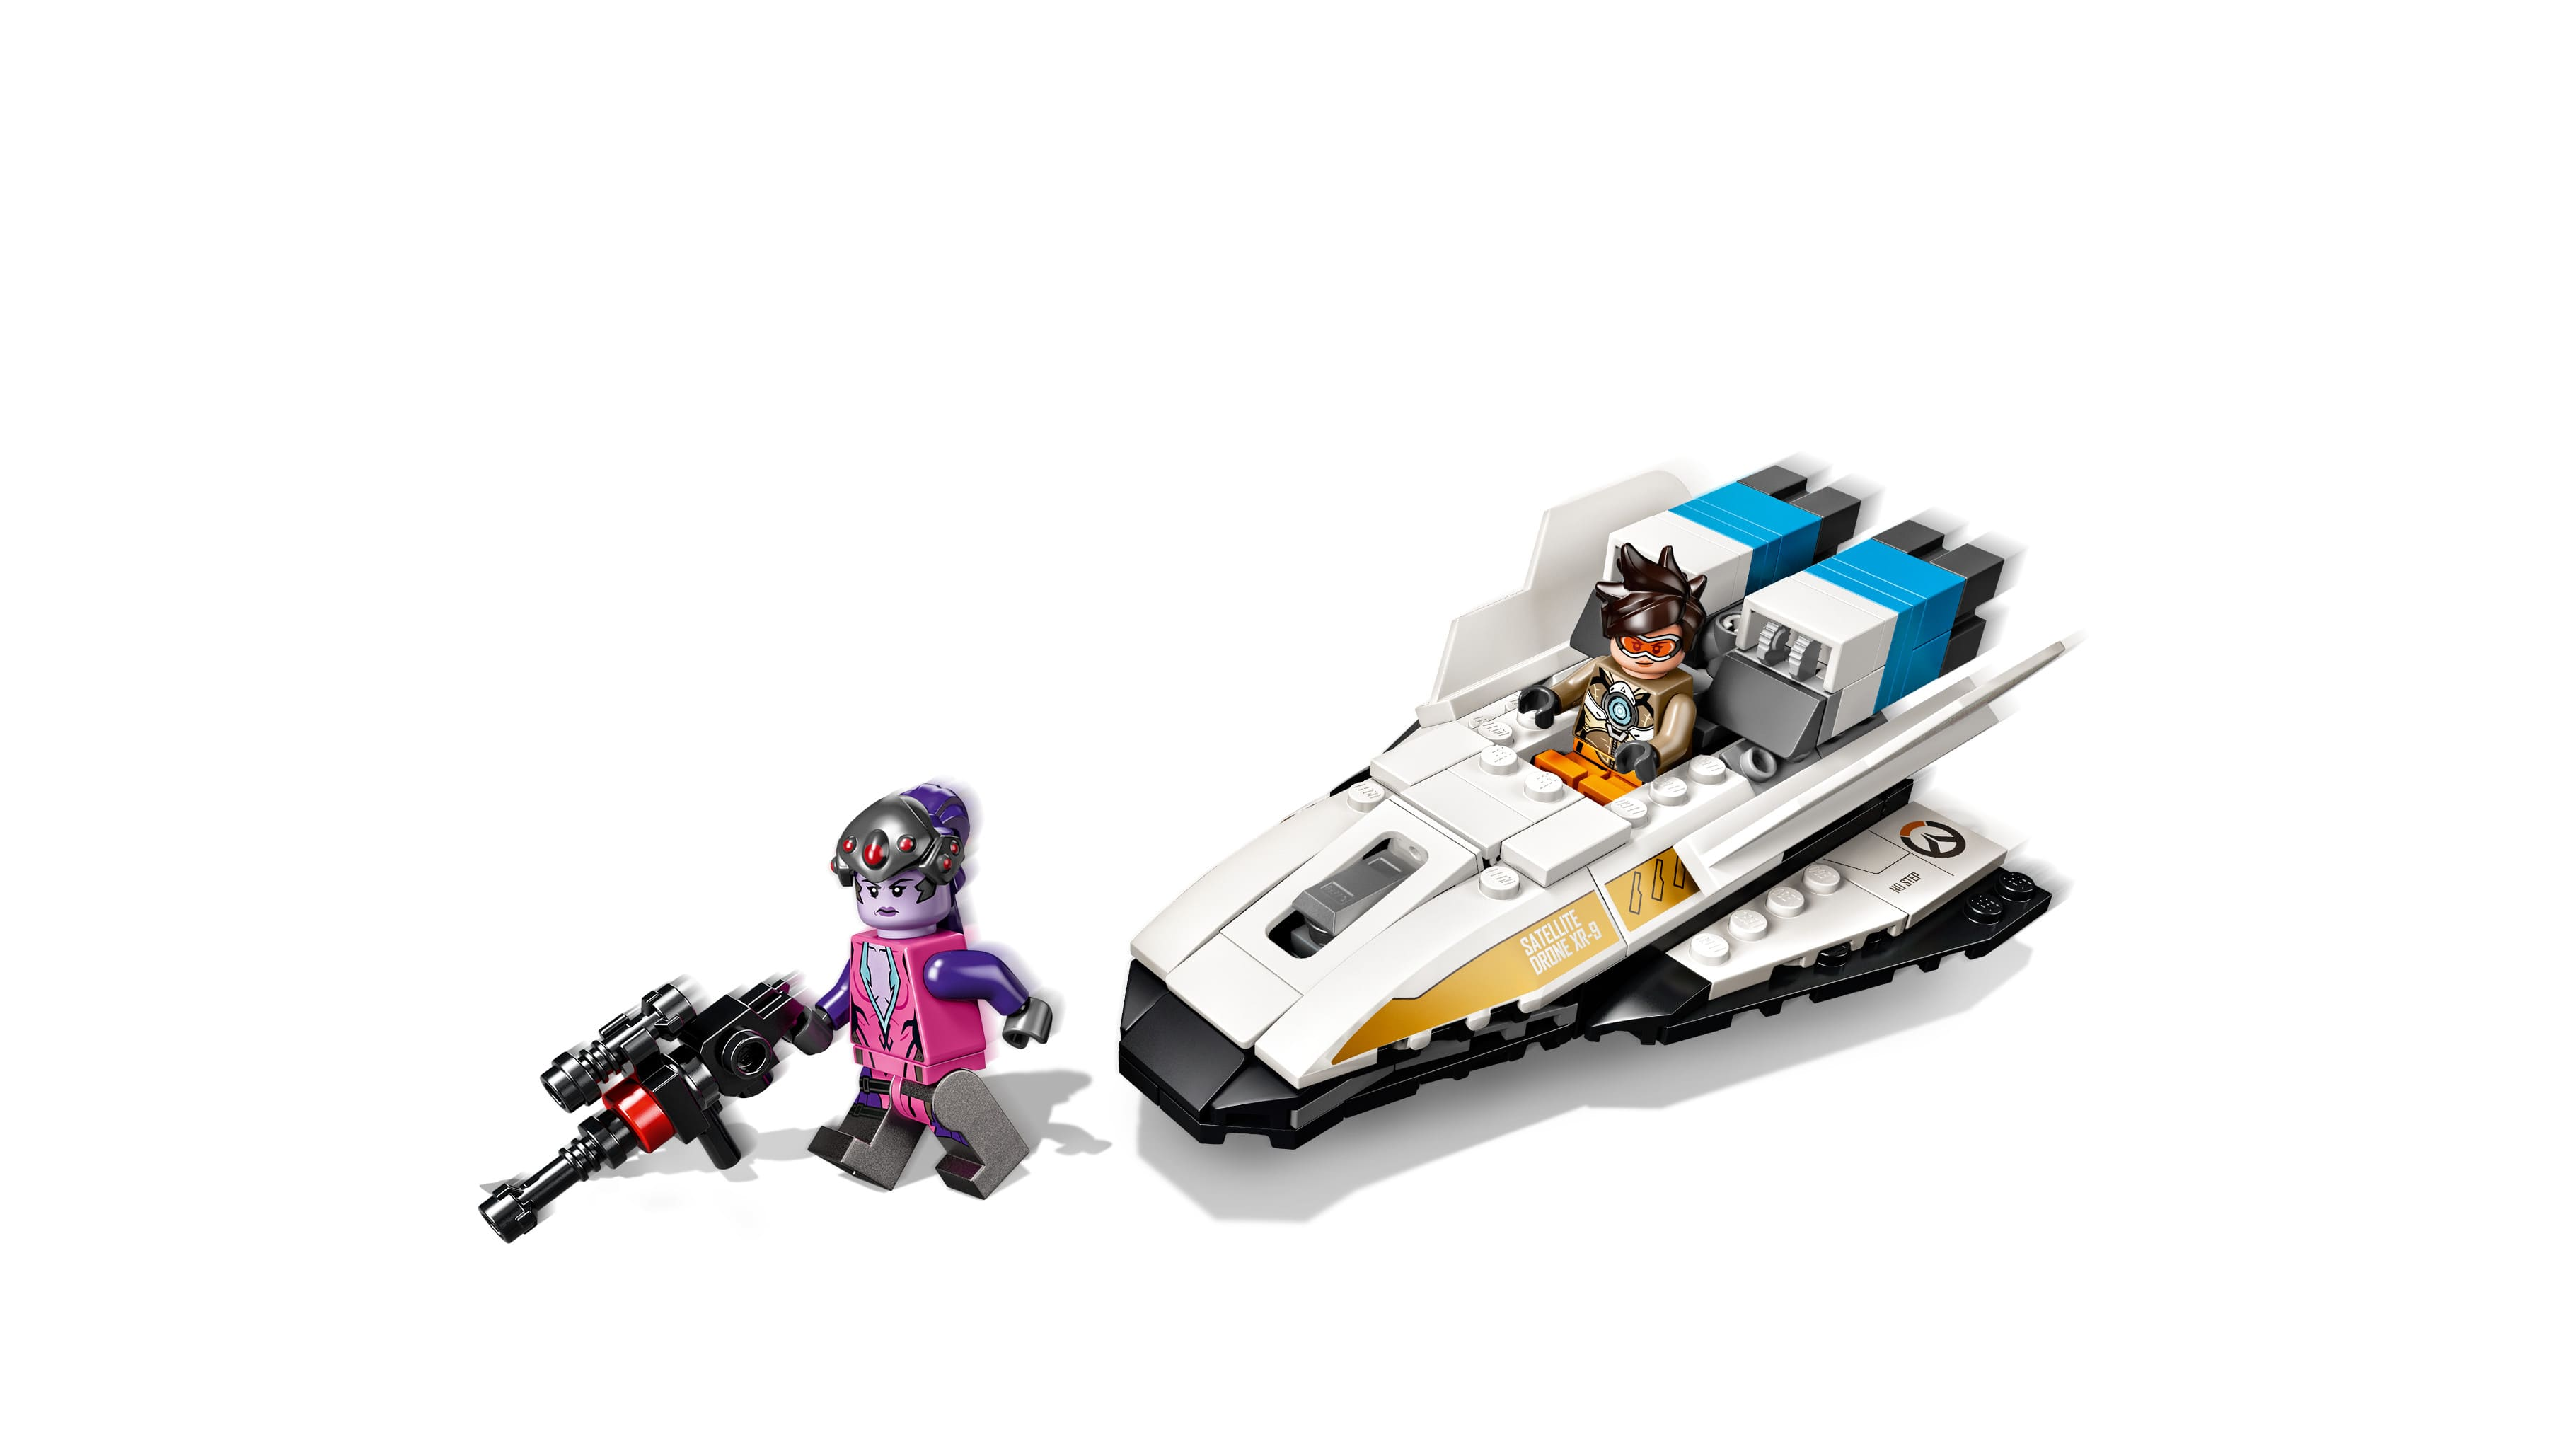 SOME Lego Overwatch models are on sale - Tracer vs Widowmaker at 9.99 & Hanzo vs Genji $11.99